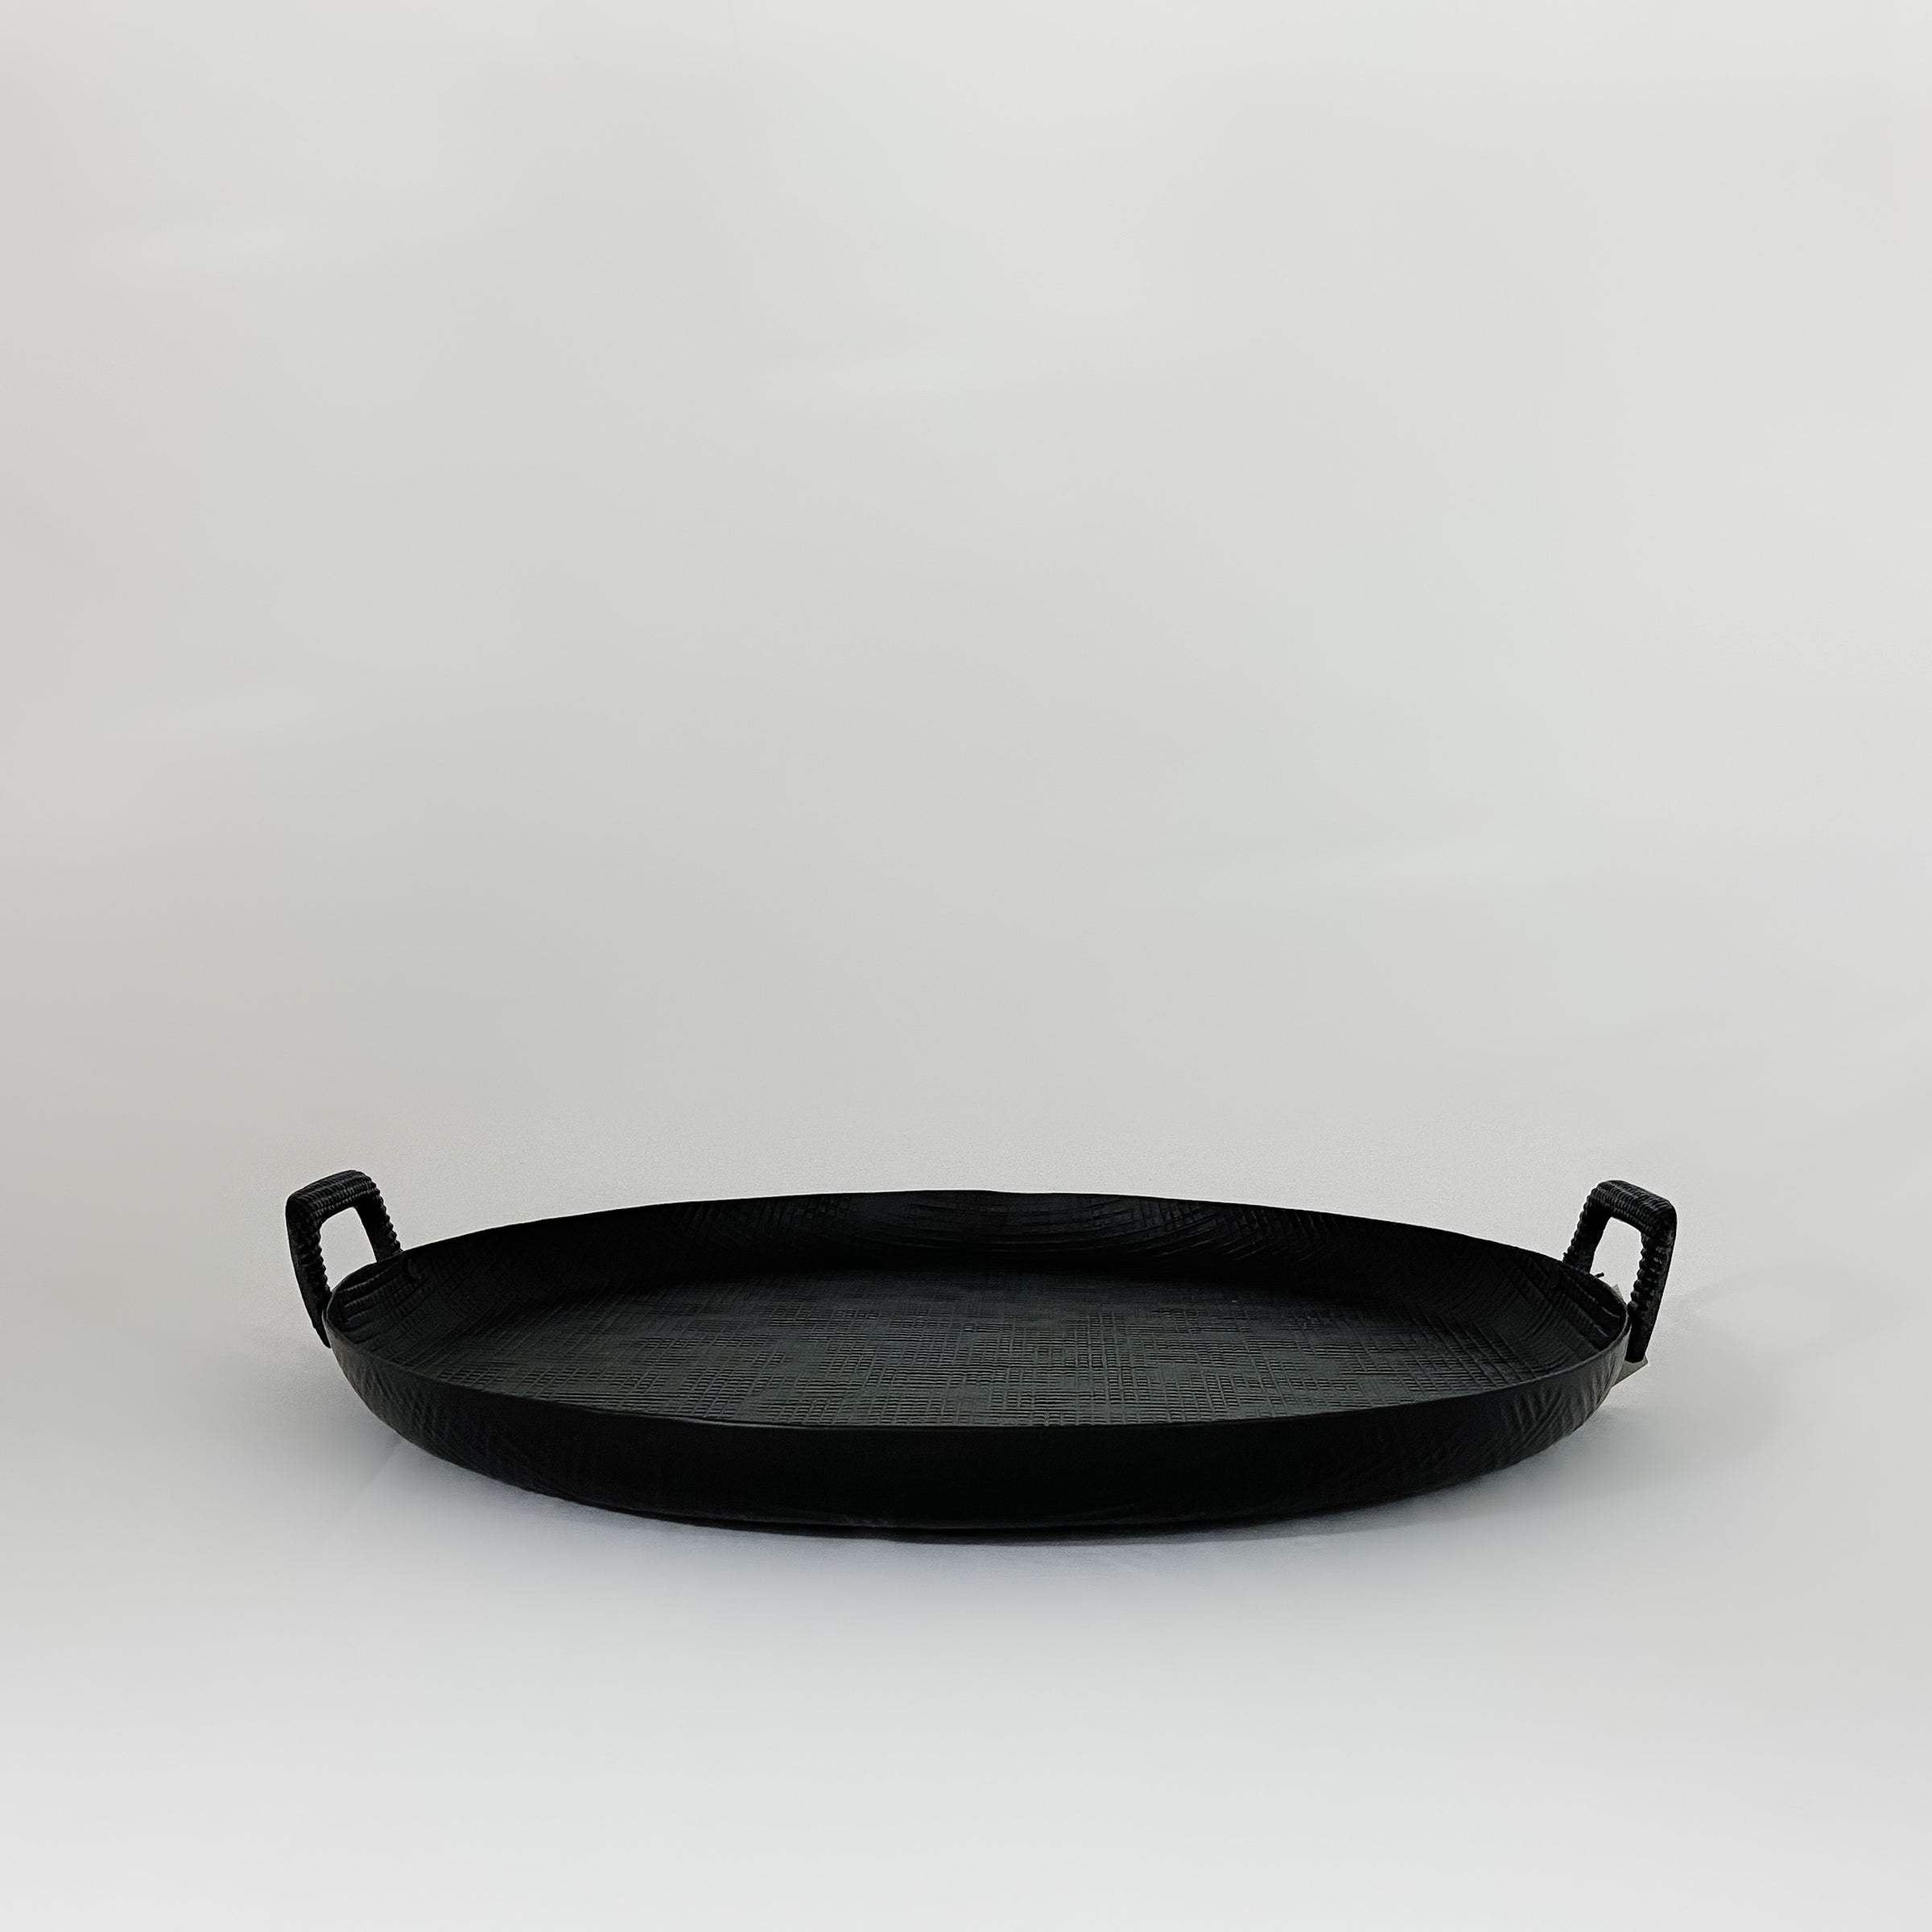 Round Embossed Aluminum Tray with Handles